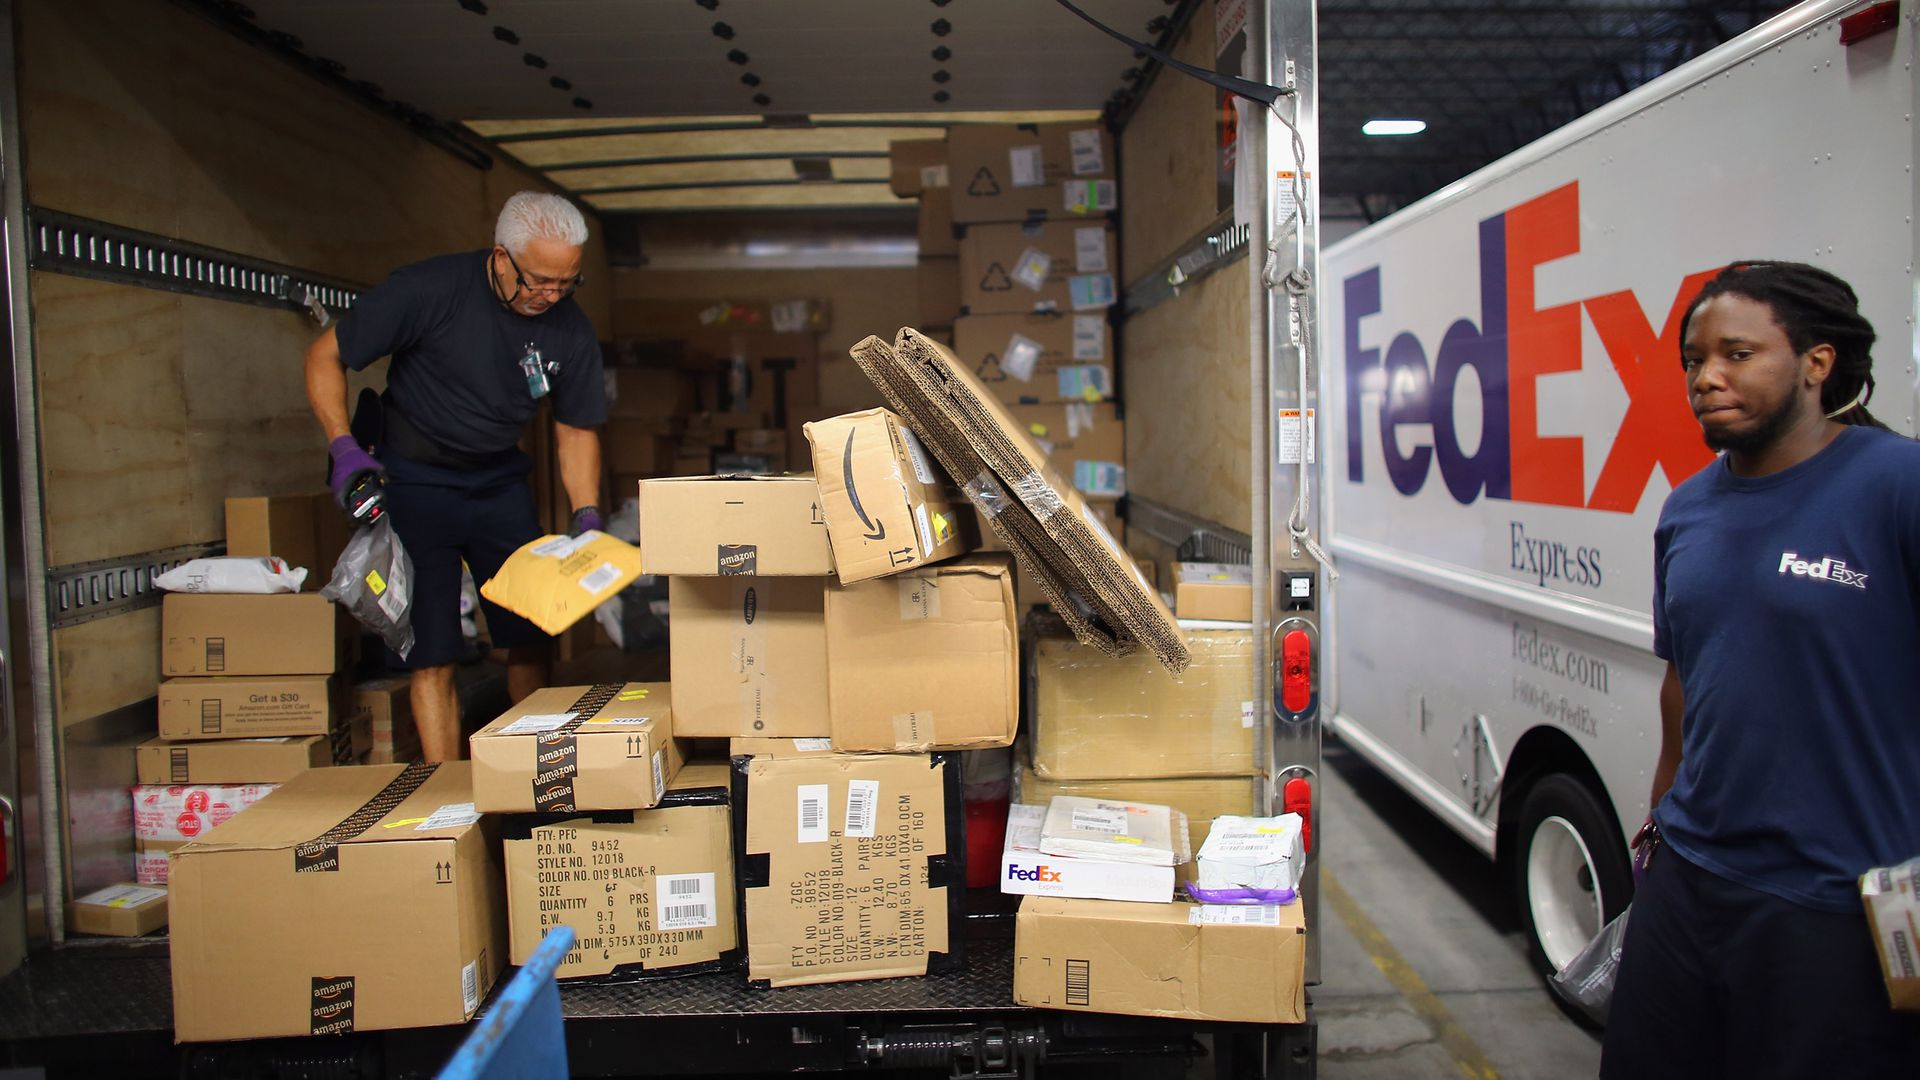 Two men load packages onto a large truck